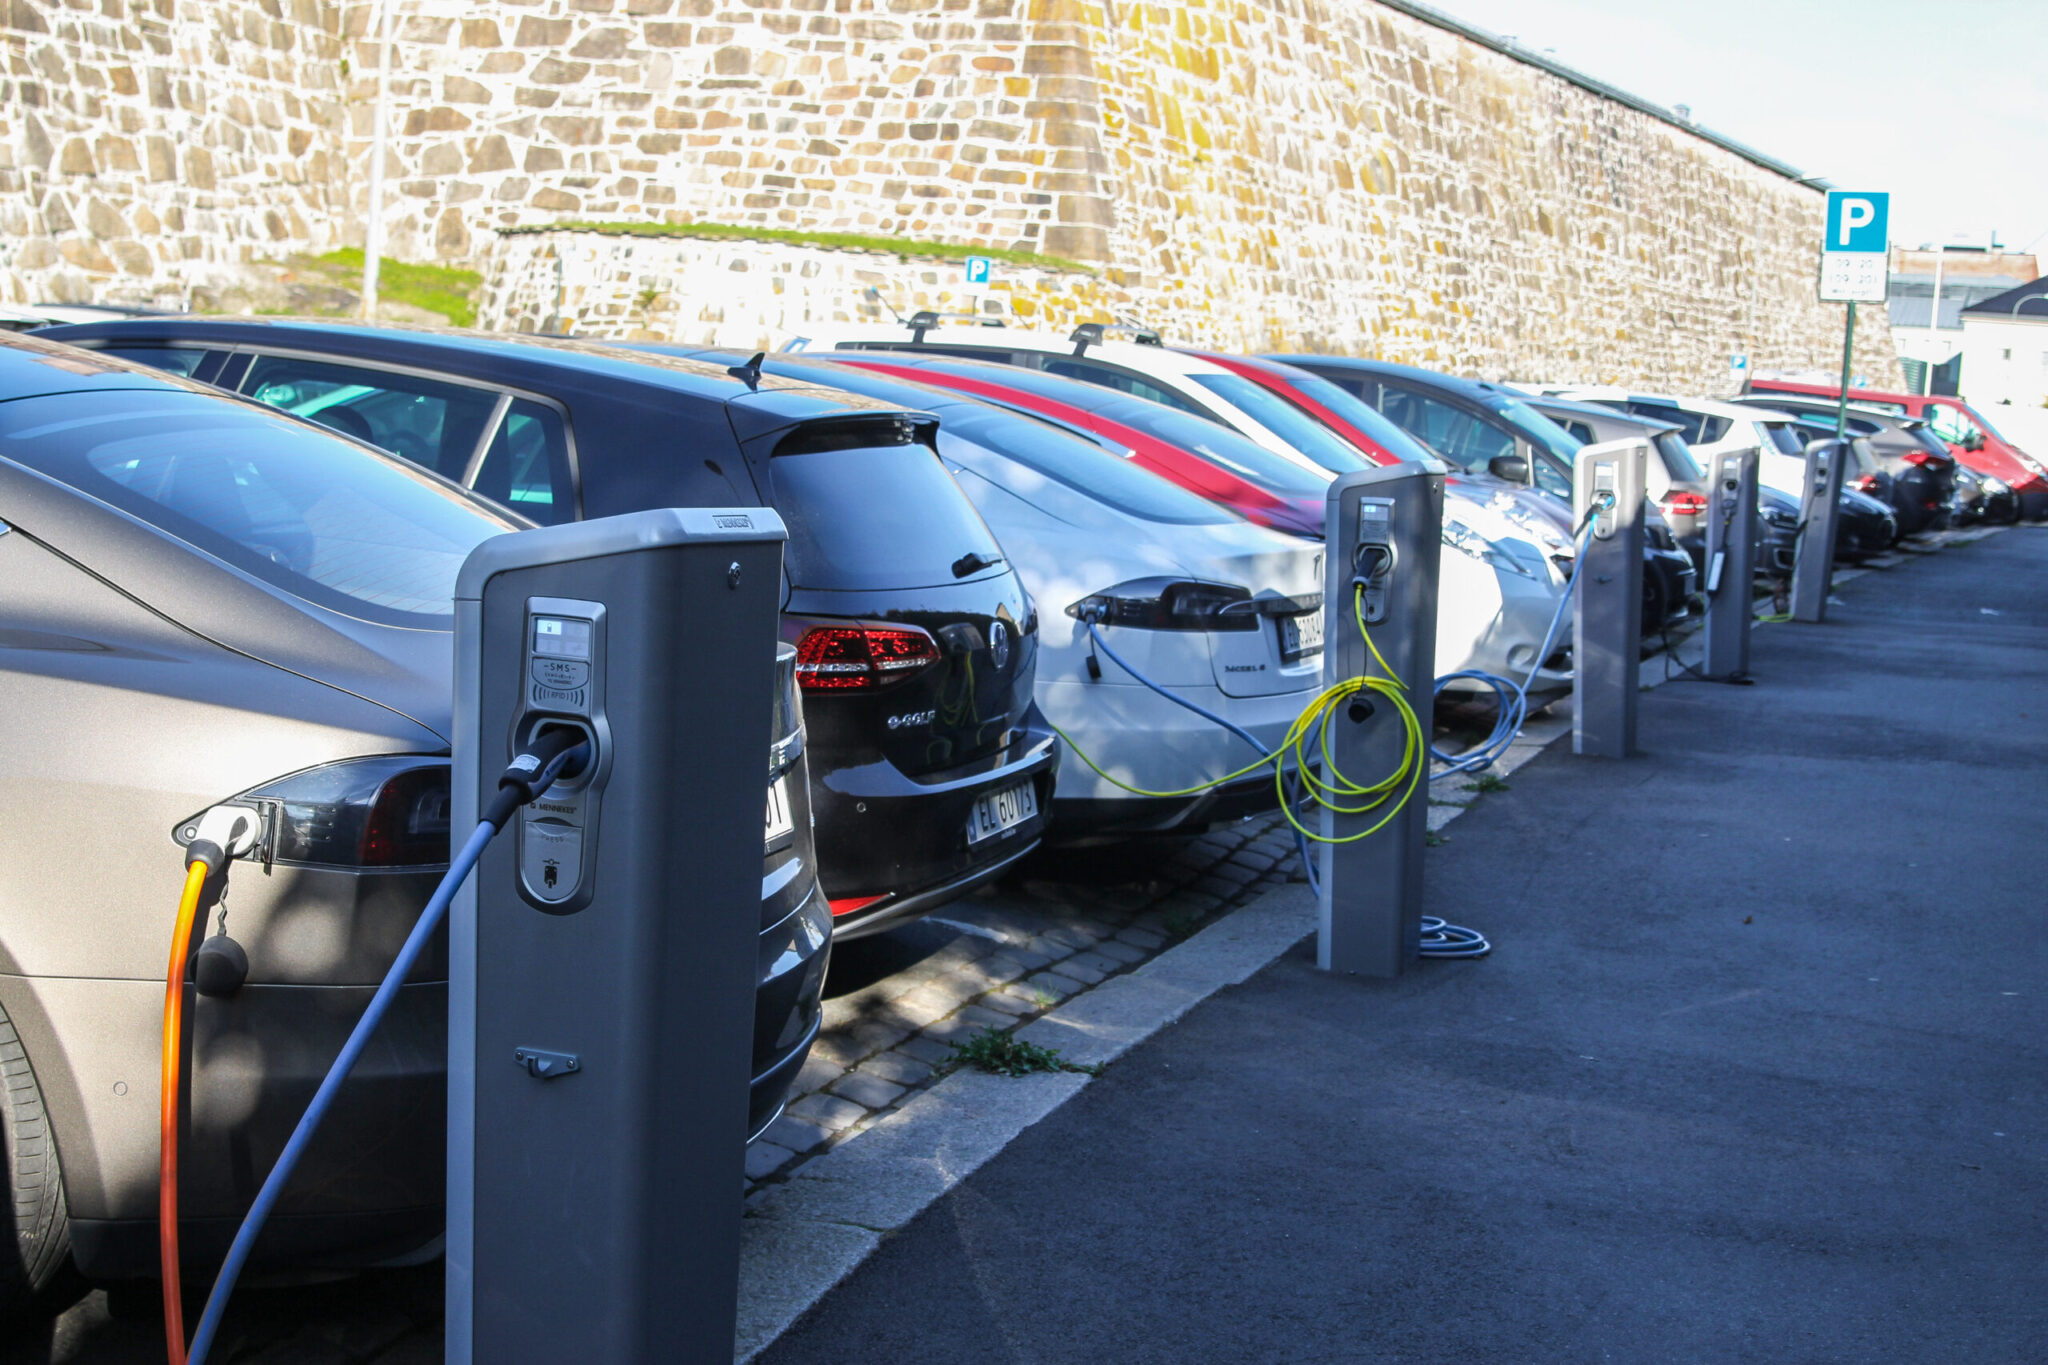 Media Release – New Tax on Electric Vehicles Will Stall Emission Reductions in Transport Sector